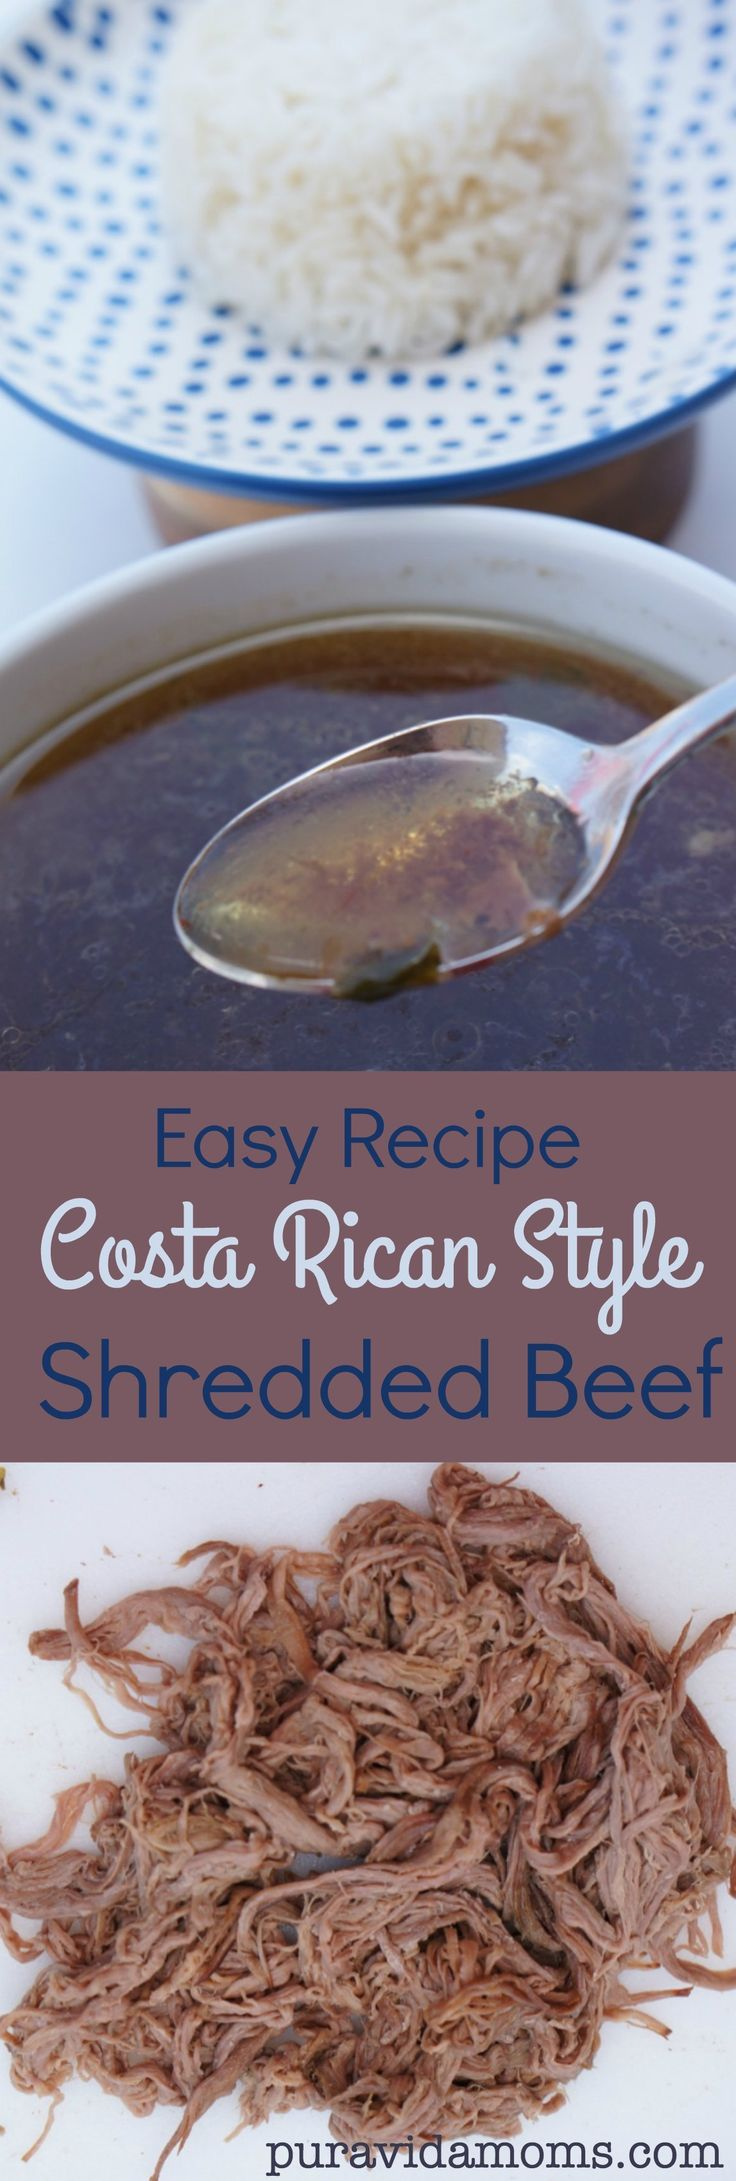 59 mejores imgenes de costa rican recipes en pinterest comida easy recipe costa rican style shredded beef forumfinder Image collections